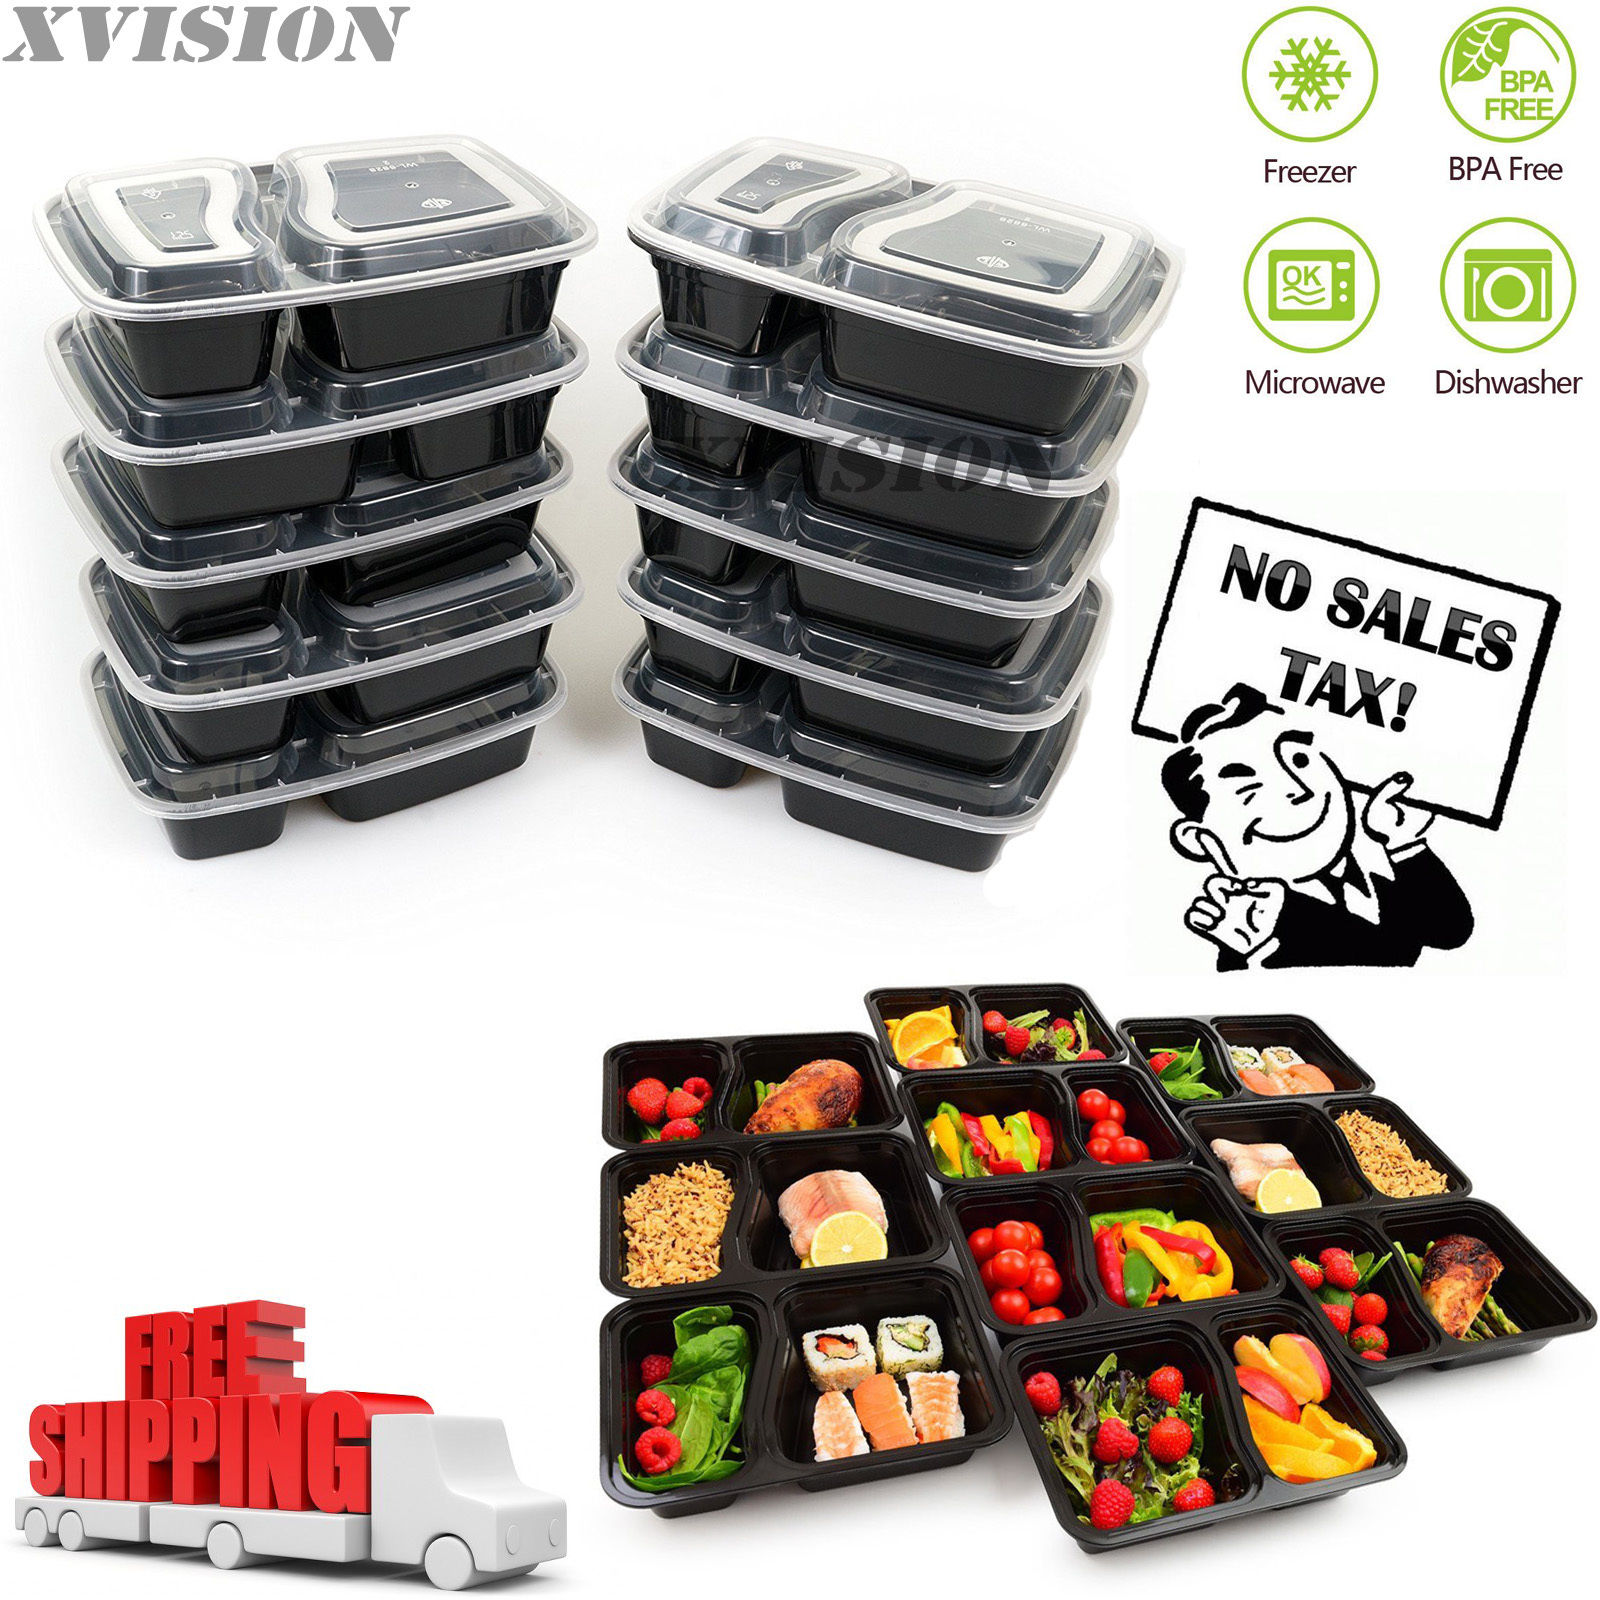 10 Meal Prep Containers 2 Compartment Food Storage Plastic Reusable Microwavable 1